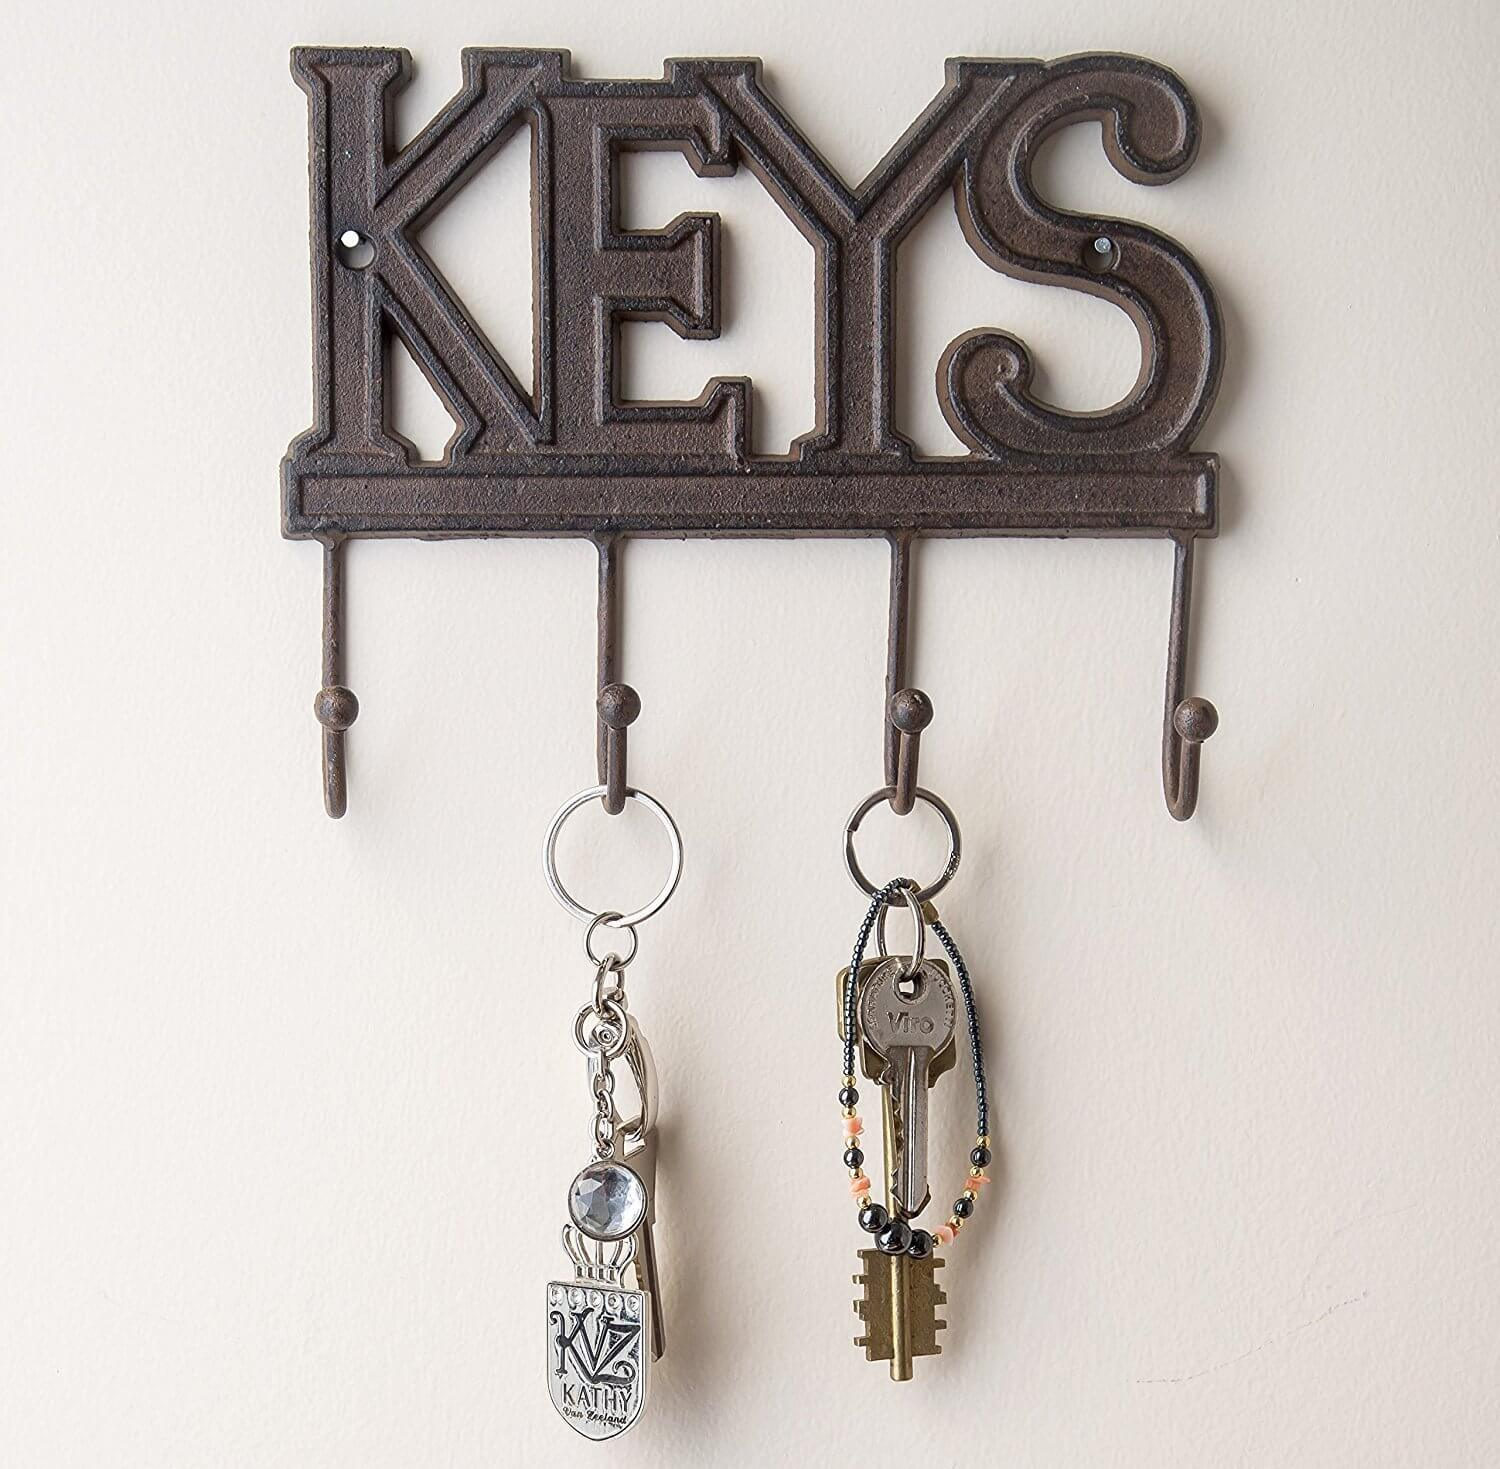 51 Diy Key Holders For Wall 19th Is Most Creative Live